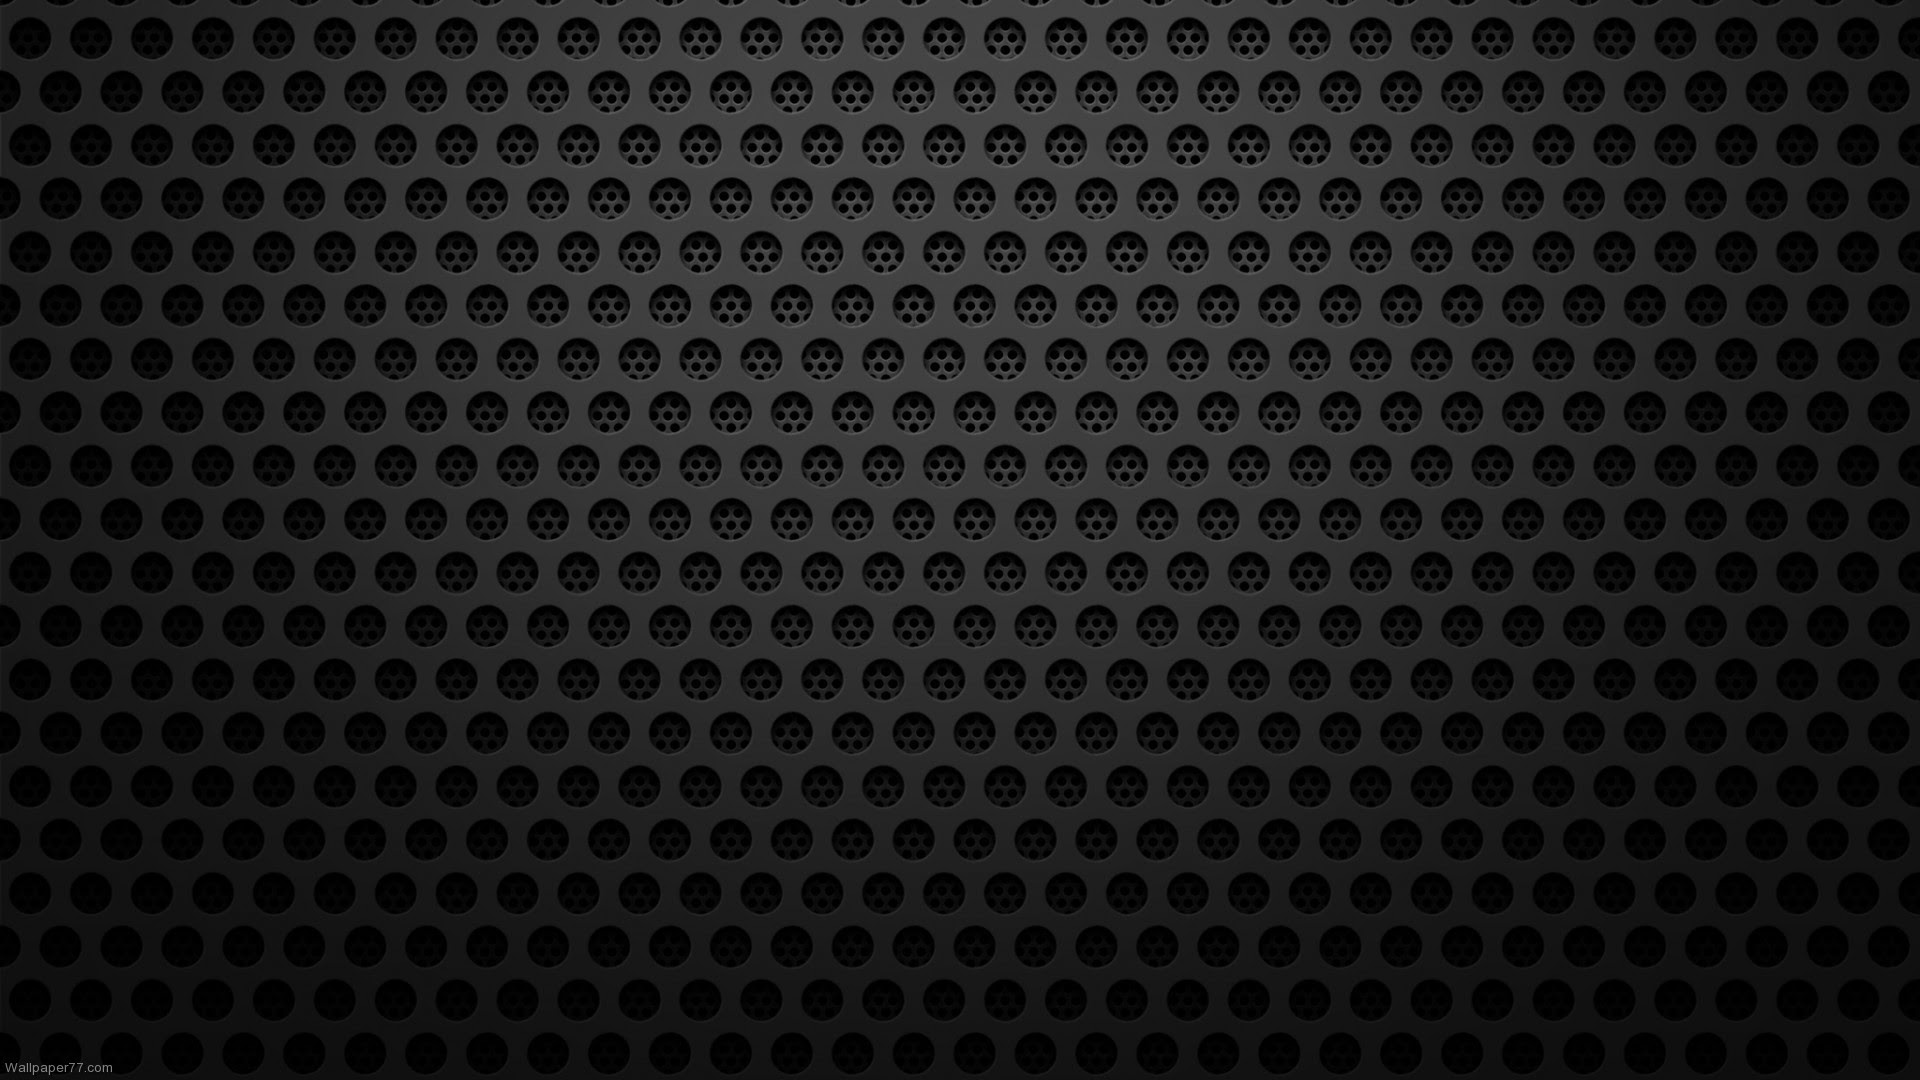 Unduh 51 Koleksi Wallpaper Black Full Hd Android Gratis Terbaru